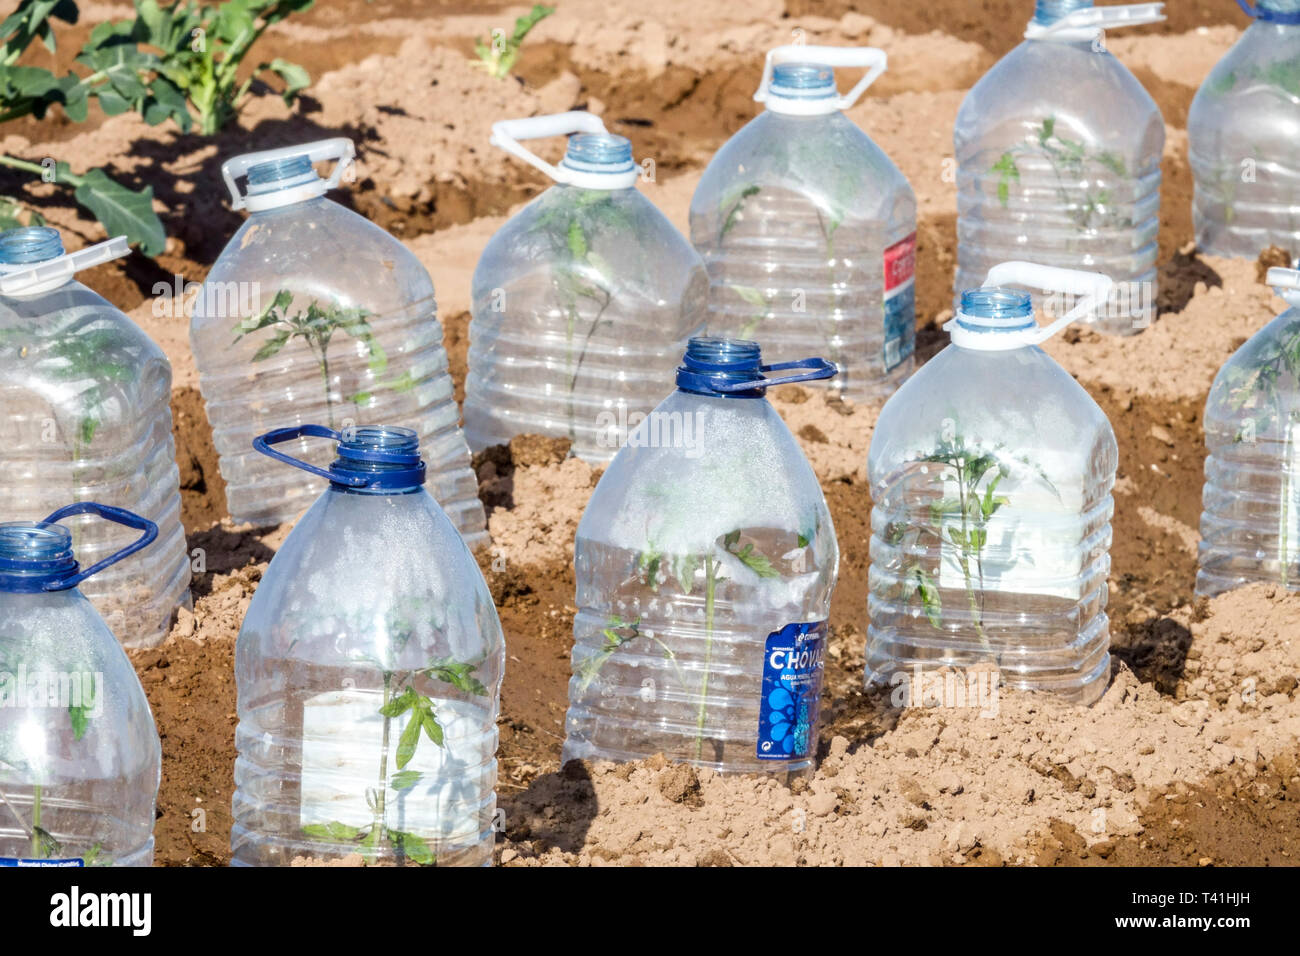 Plastic bottles protecting young plants from morning cold, allotment garden Spain Stock Photo